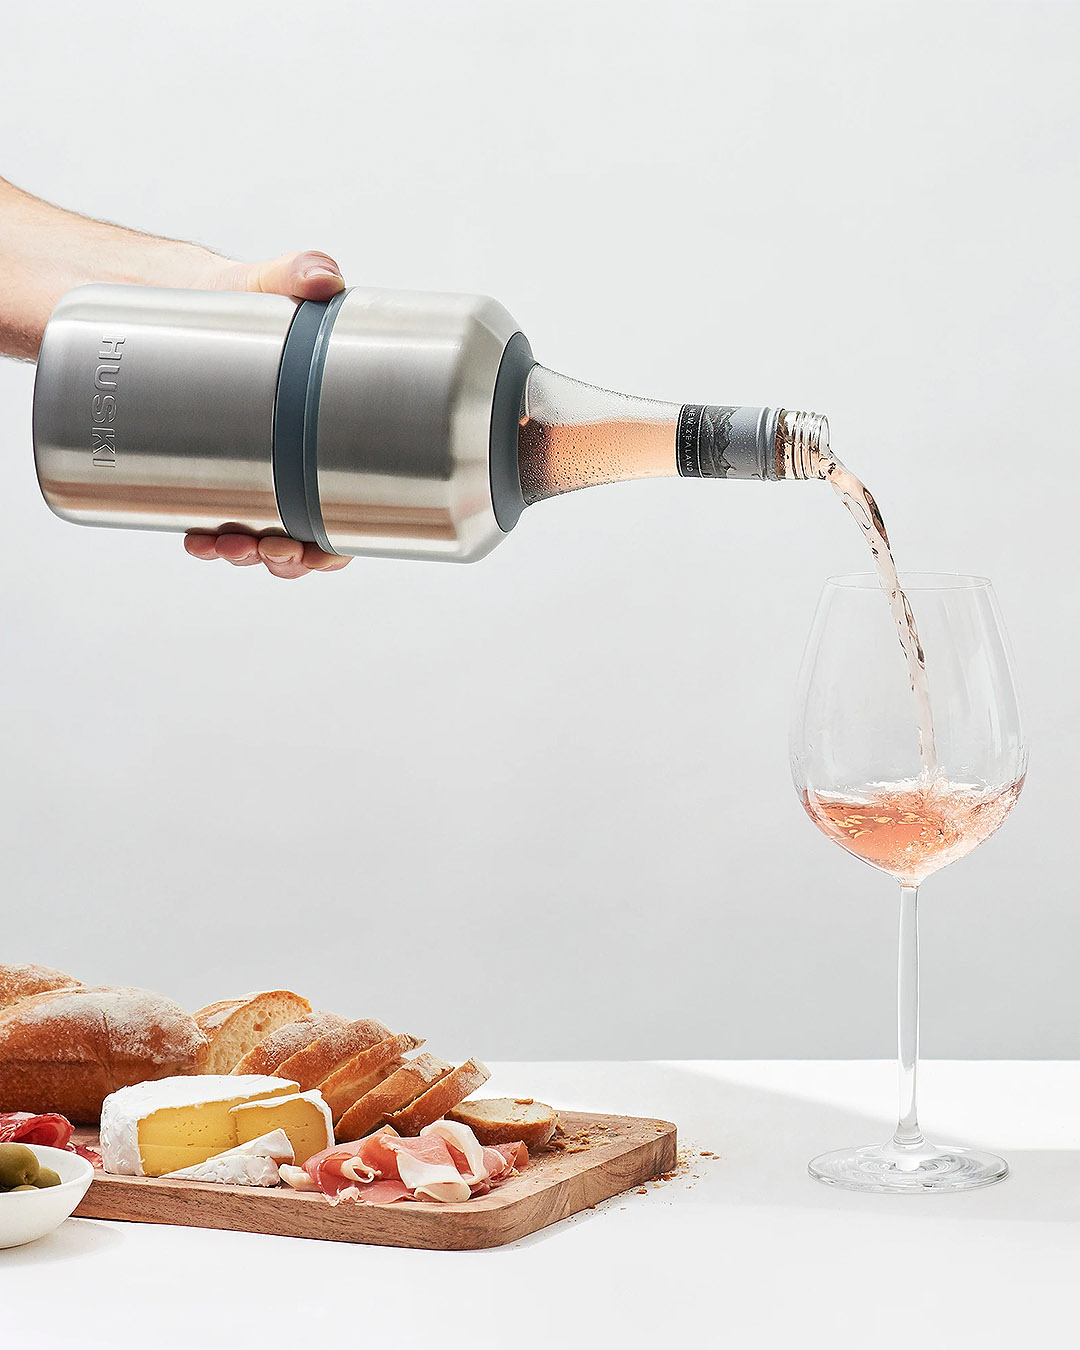 A person pours perfectly chilled rose from a stainless steel Huski wine cooler.